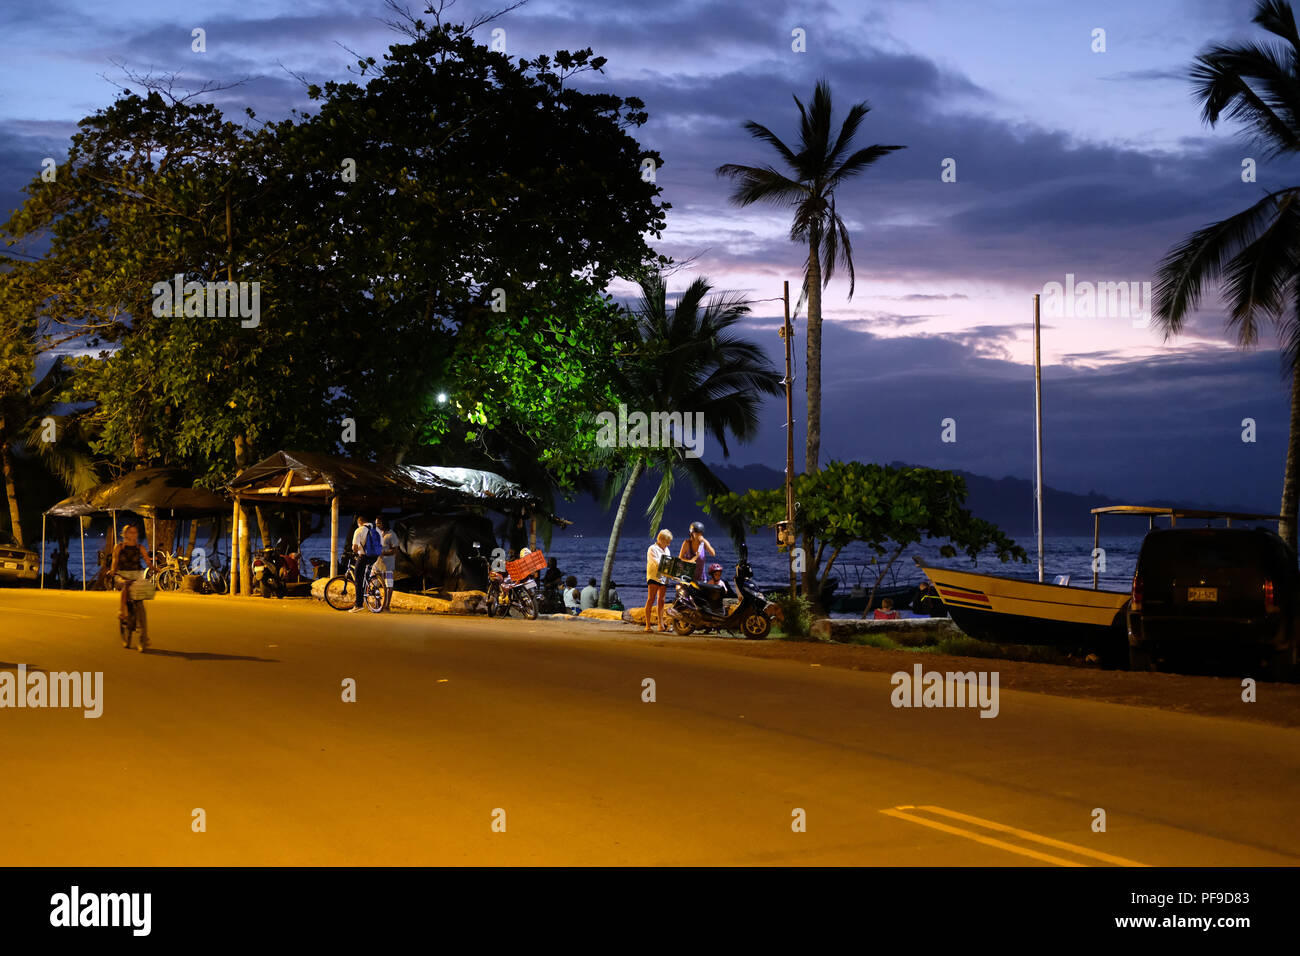 An Evening in Punto Cocles Stock Photo